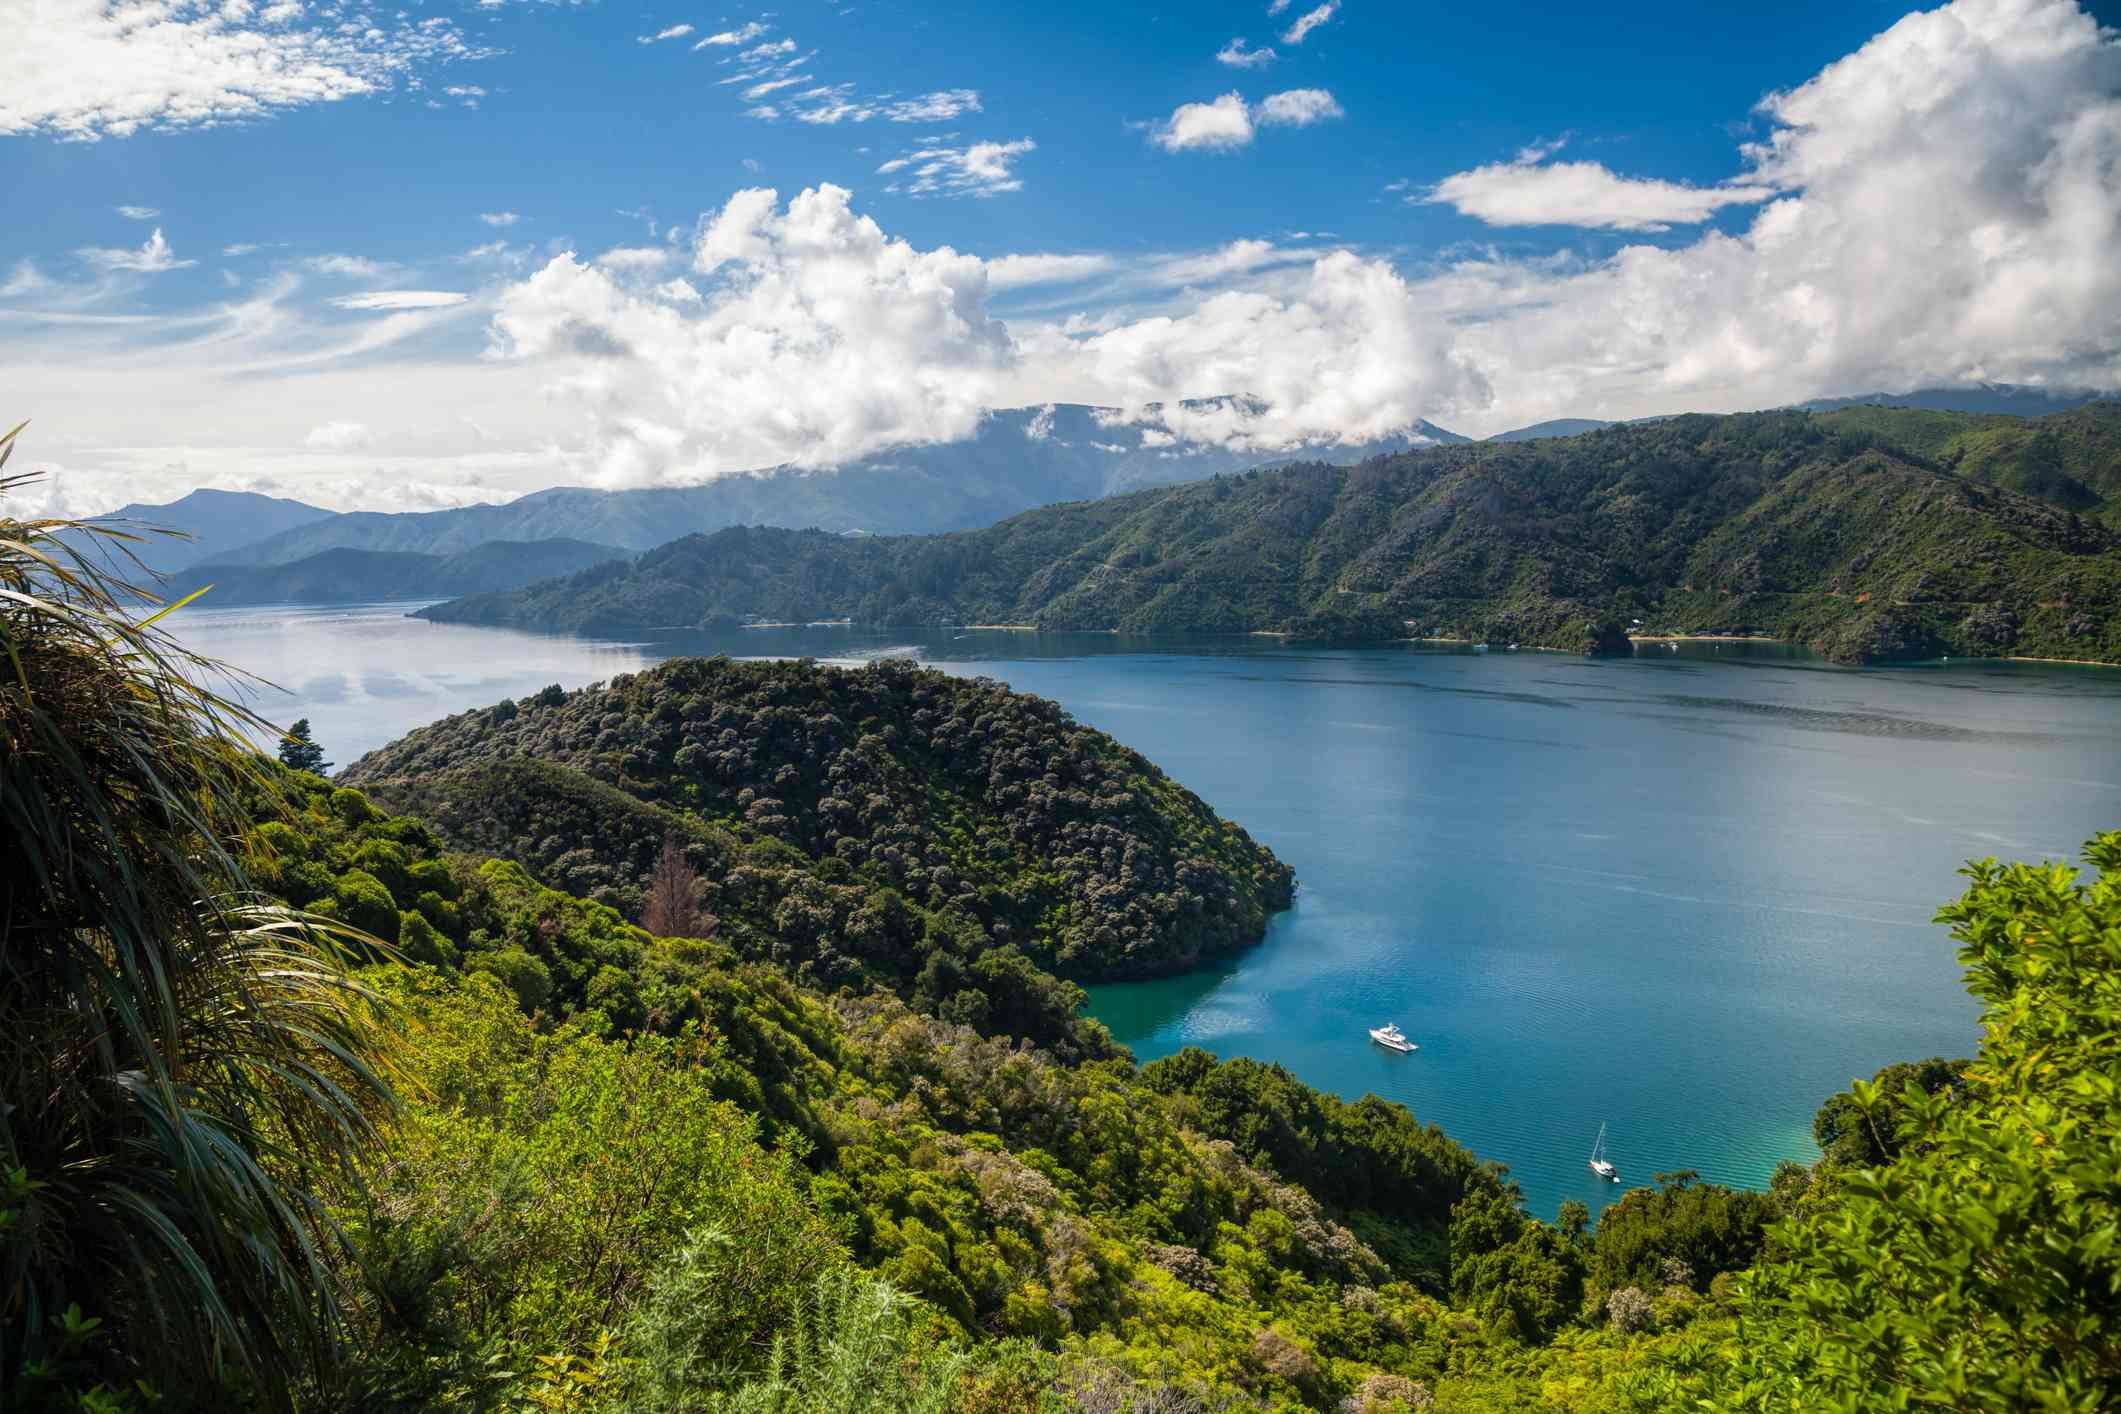 blue water and forest-covered hills in the Marlborough Sounds